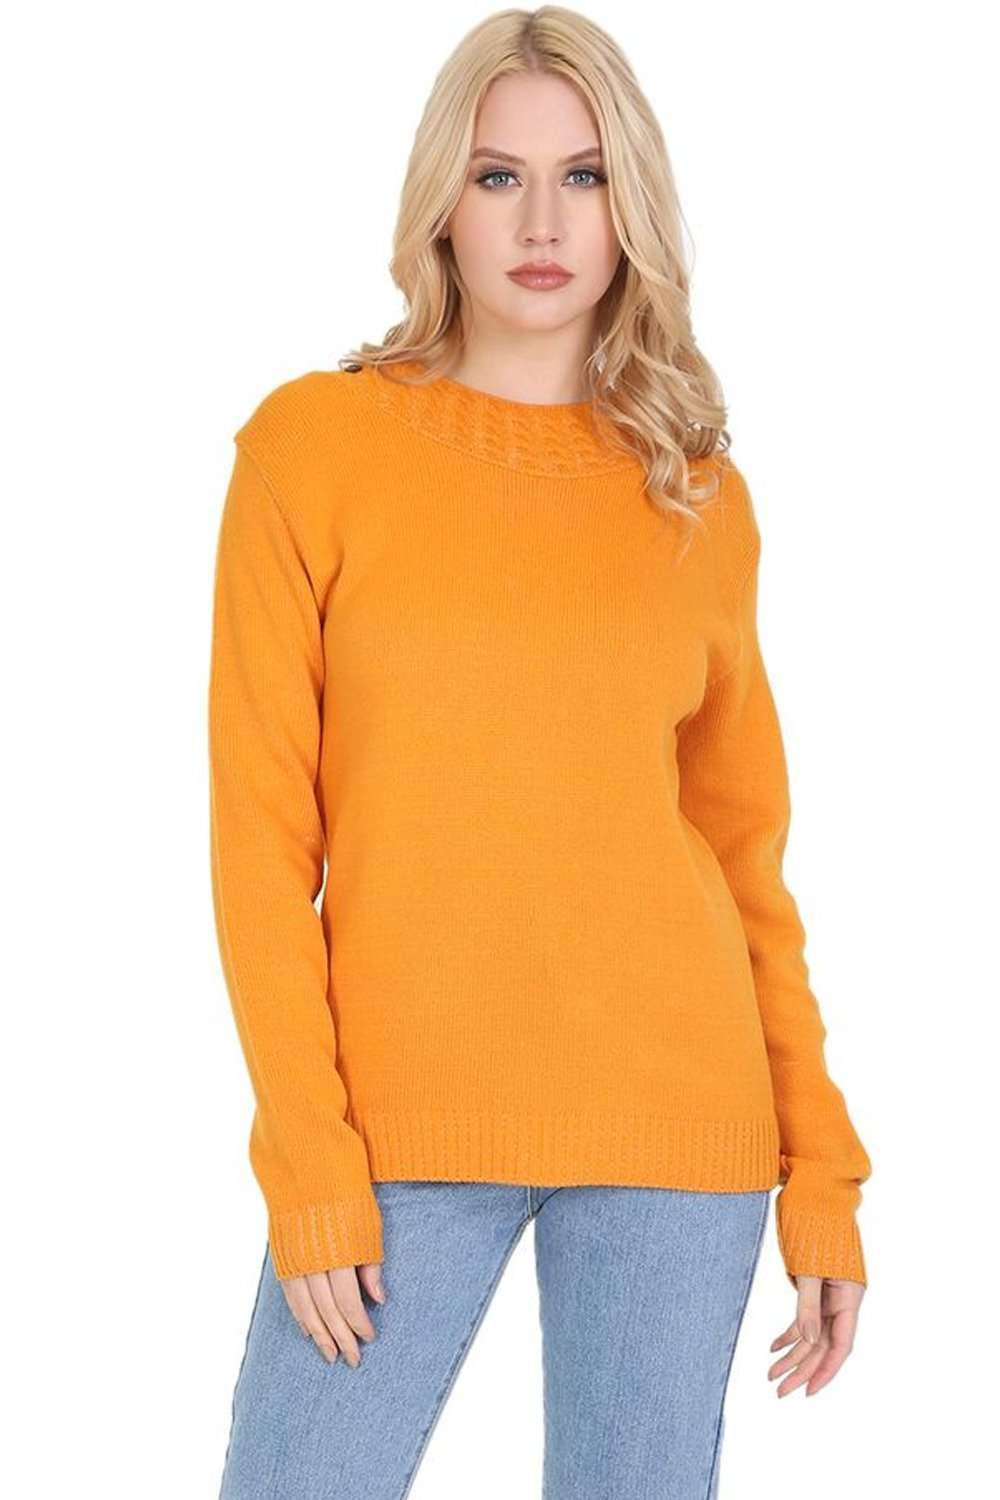 Sophie Long Sleeve Button Neck Cable Knitted Jumper - bejealous-com